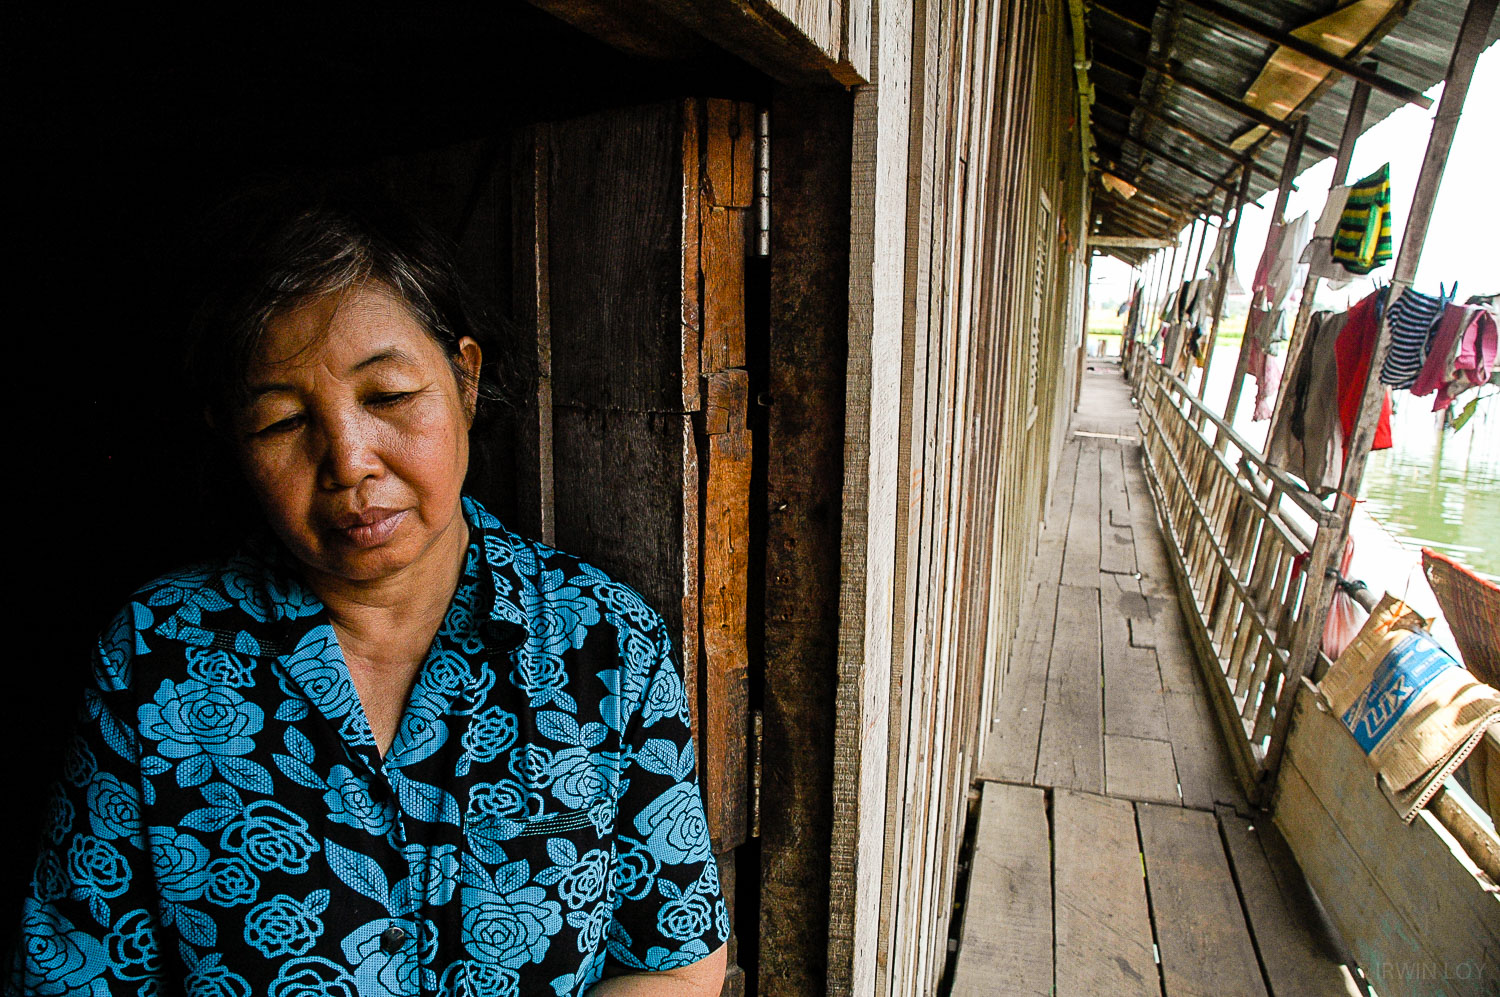 Yuen Mach, 58, stands in the doorway to her home over Phnom Penh's Boeung Kak lake. Her family is one of roughly 4,000 that could be forced to move to make way for a controversial 133-hectare real estate project.